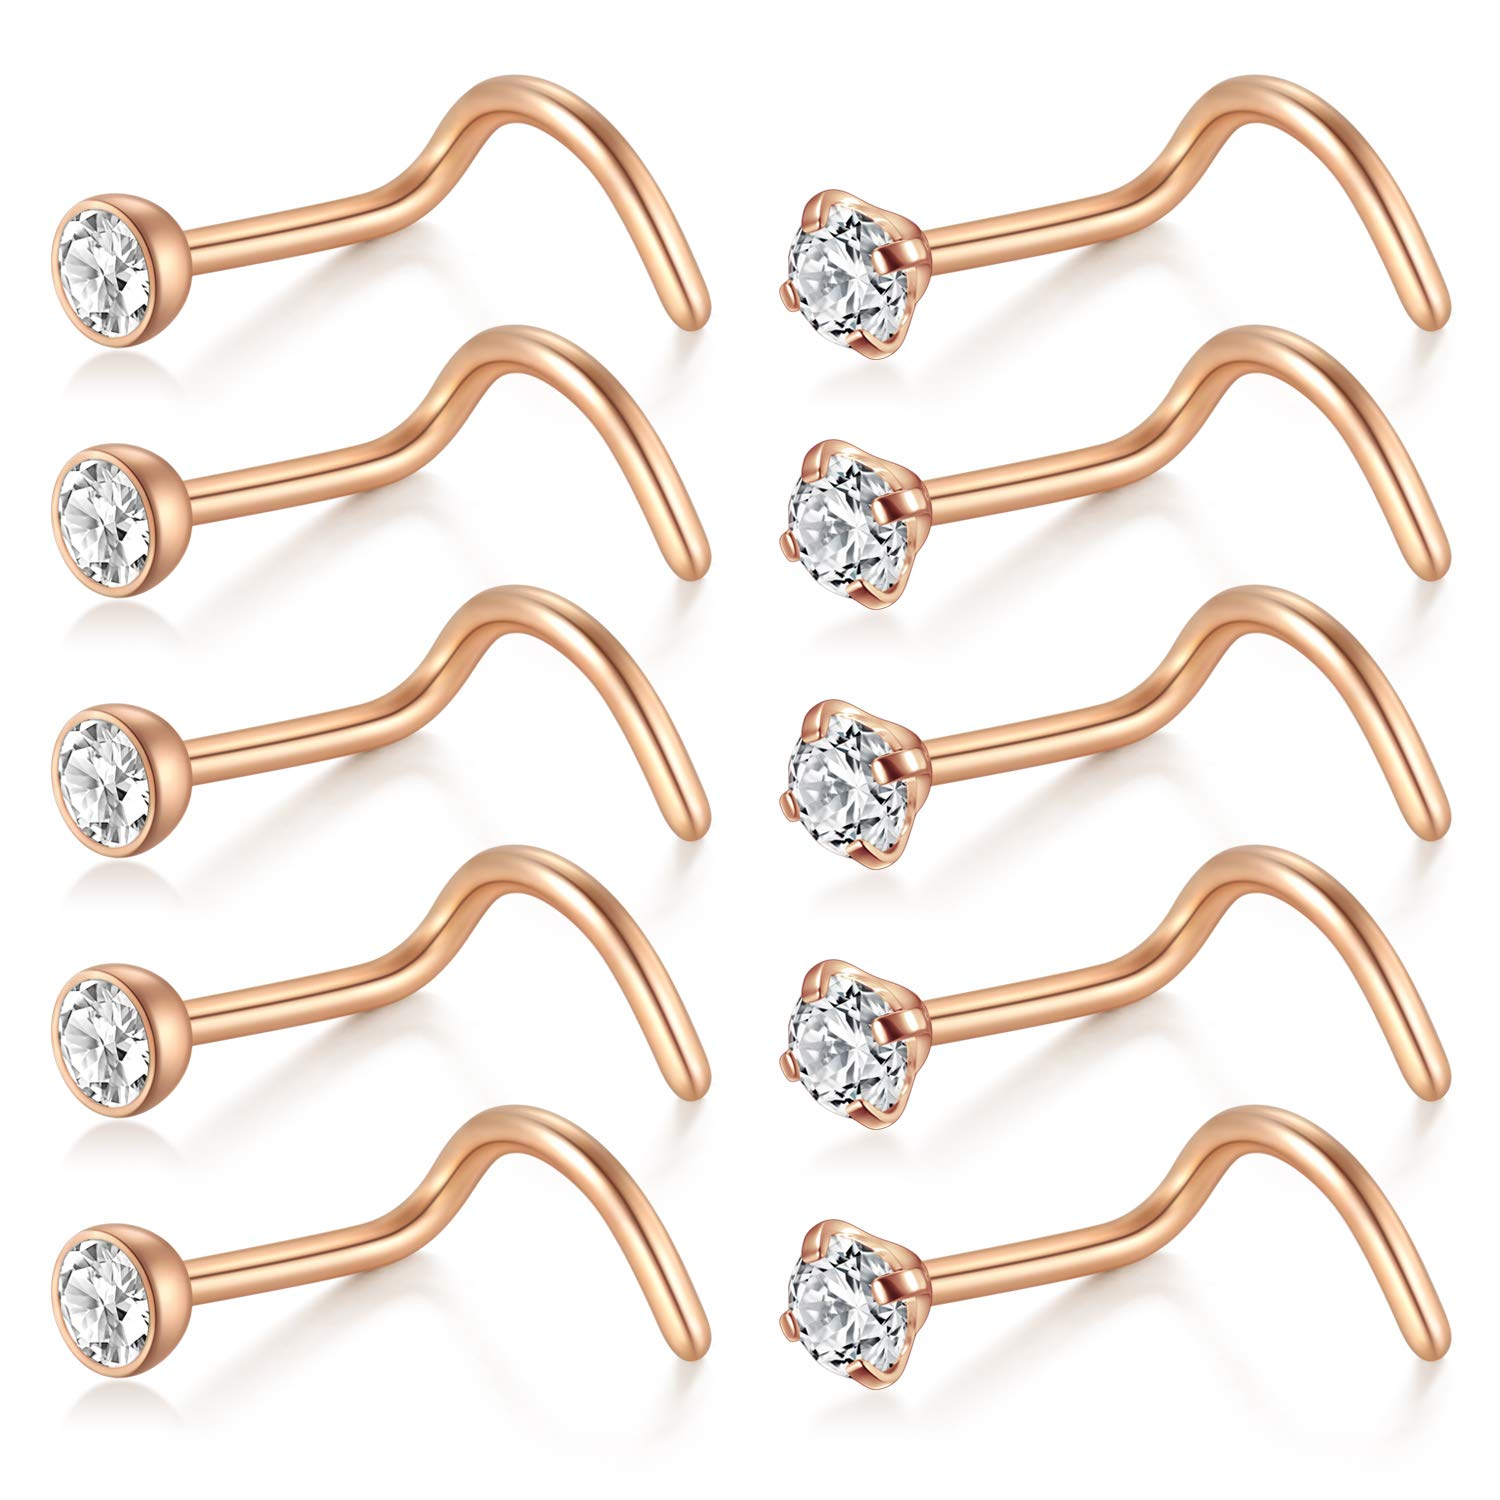 D.Bella Nose Rings 10Pcs 18G Nose Screw Rings Studs Surgical Steel Piercing Jewelry 2mm Clear CZ Z-DB-7